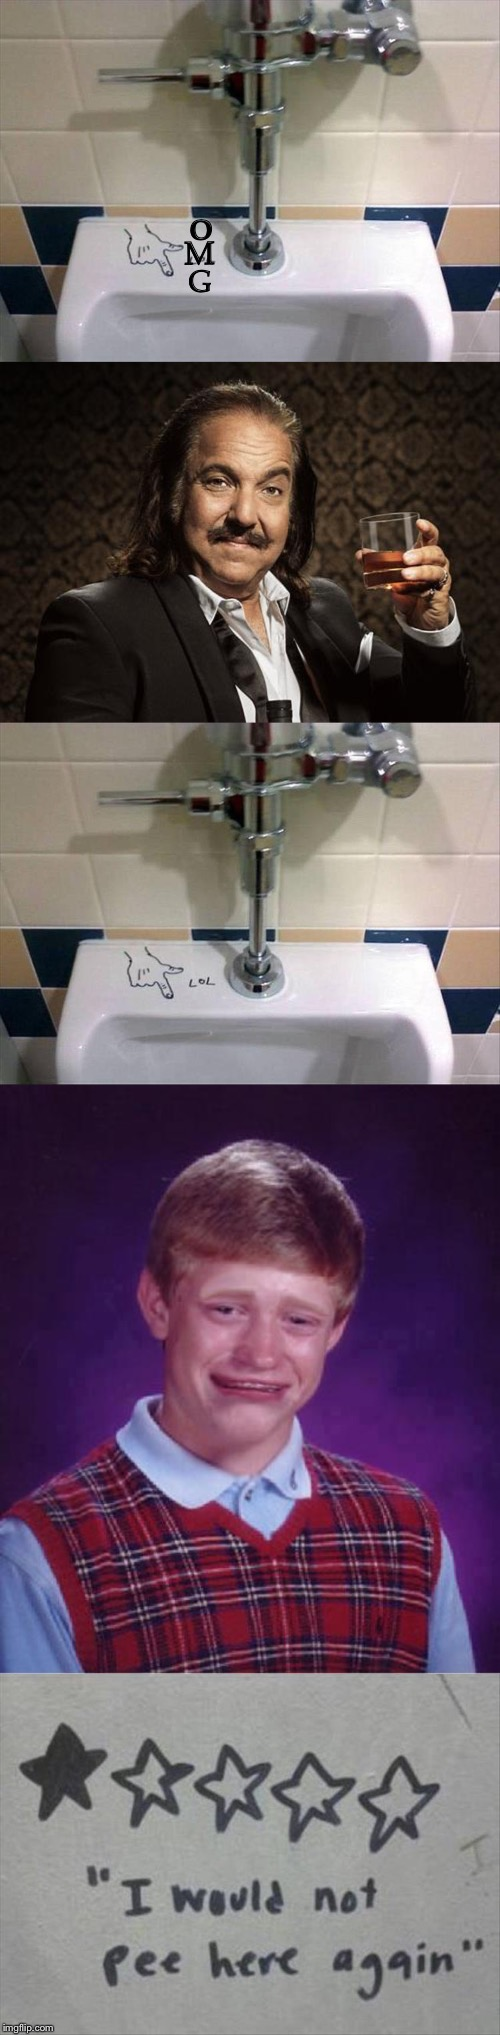 That's the long and the short of it. | O M G | image tagged in bad luck brian cry,ron jeremy,urinal,memes,funny | made w/ Imgflip meme maker